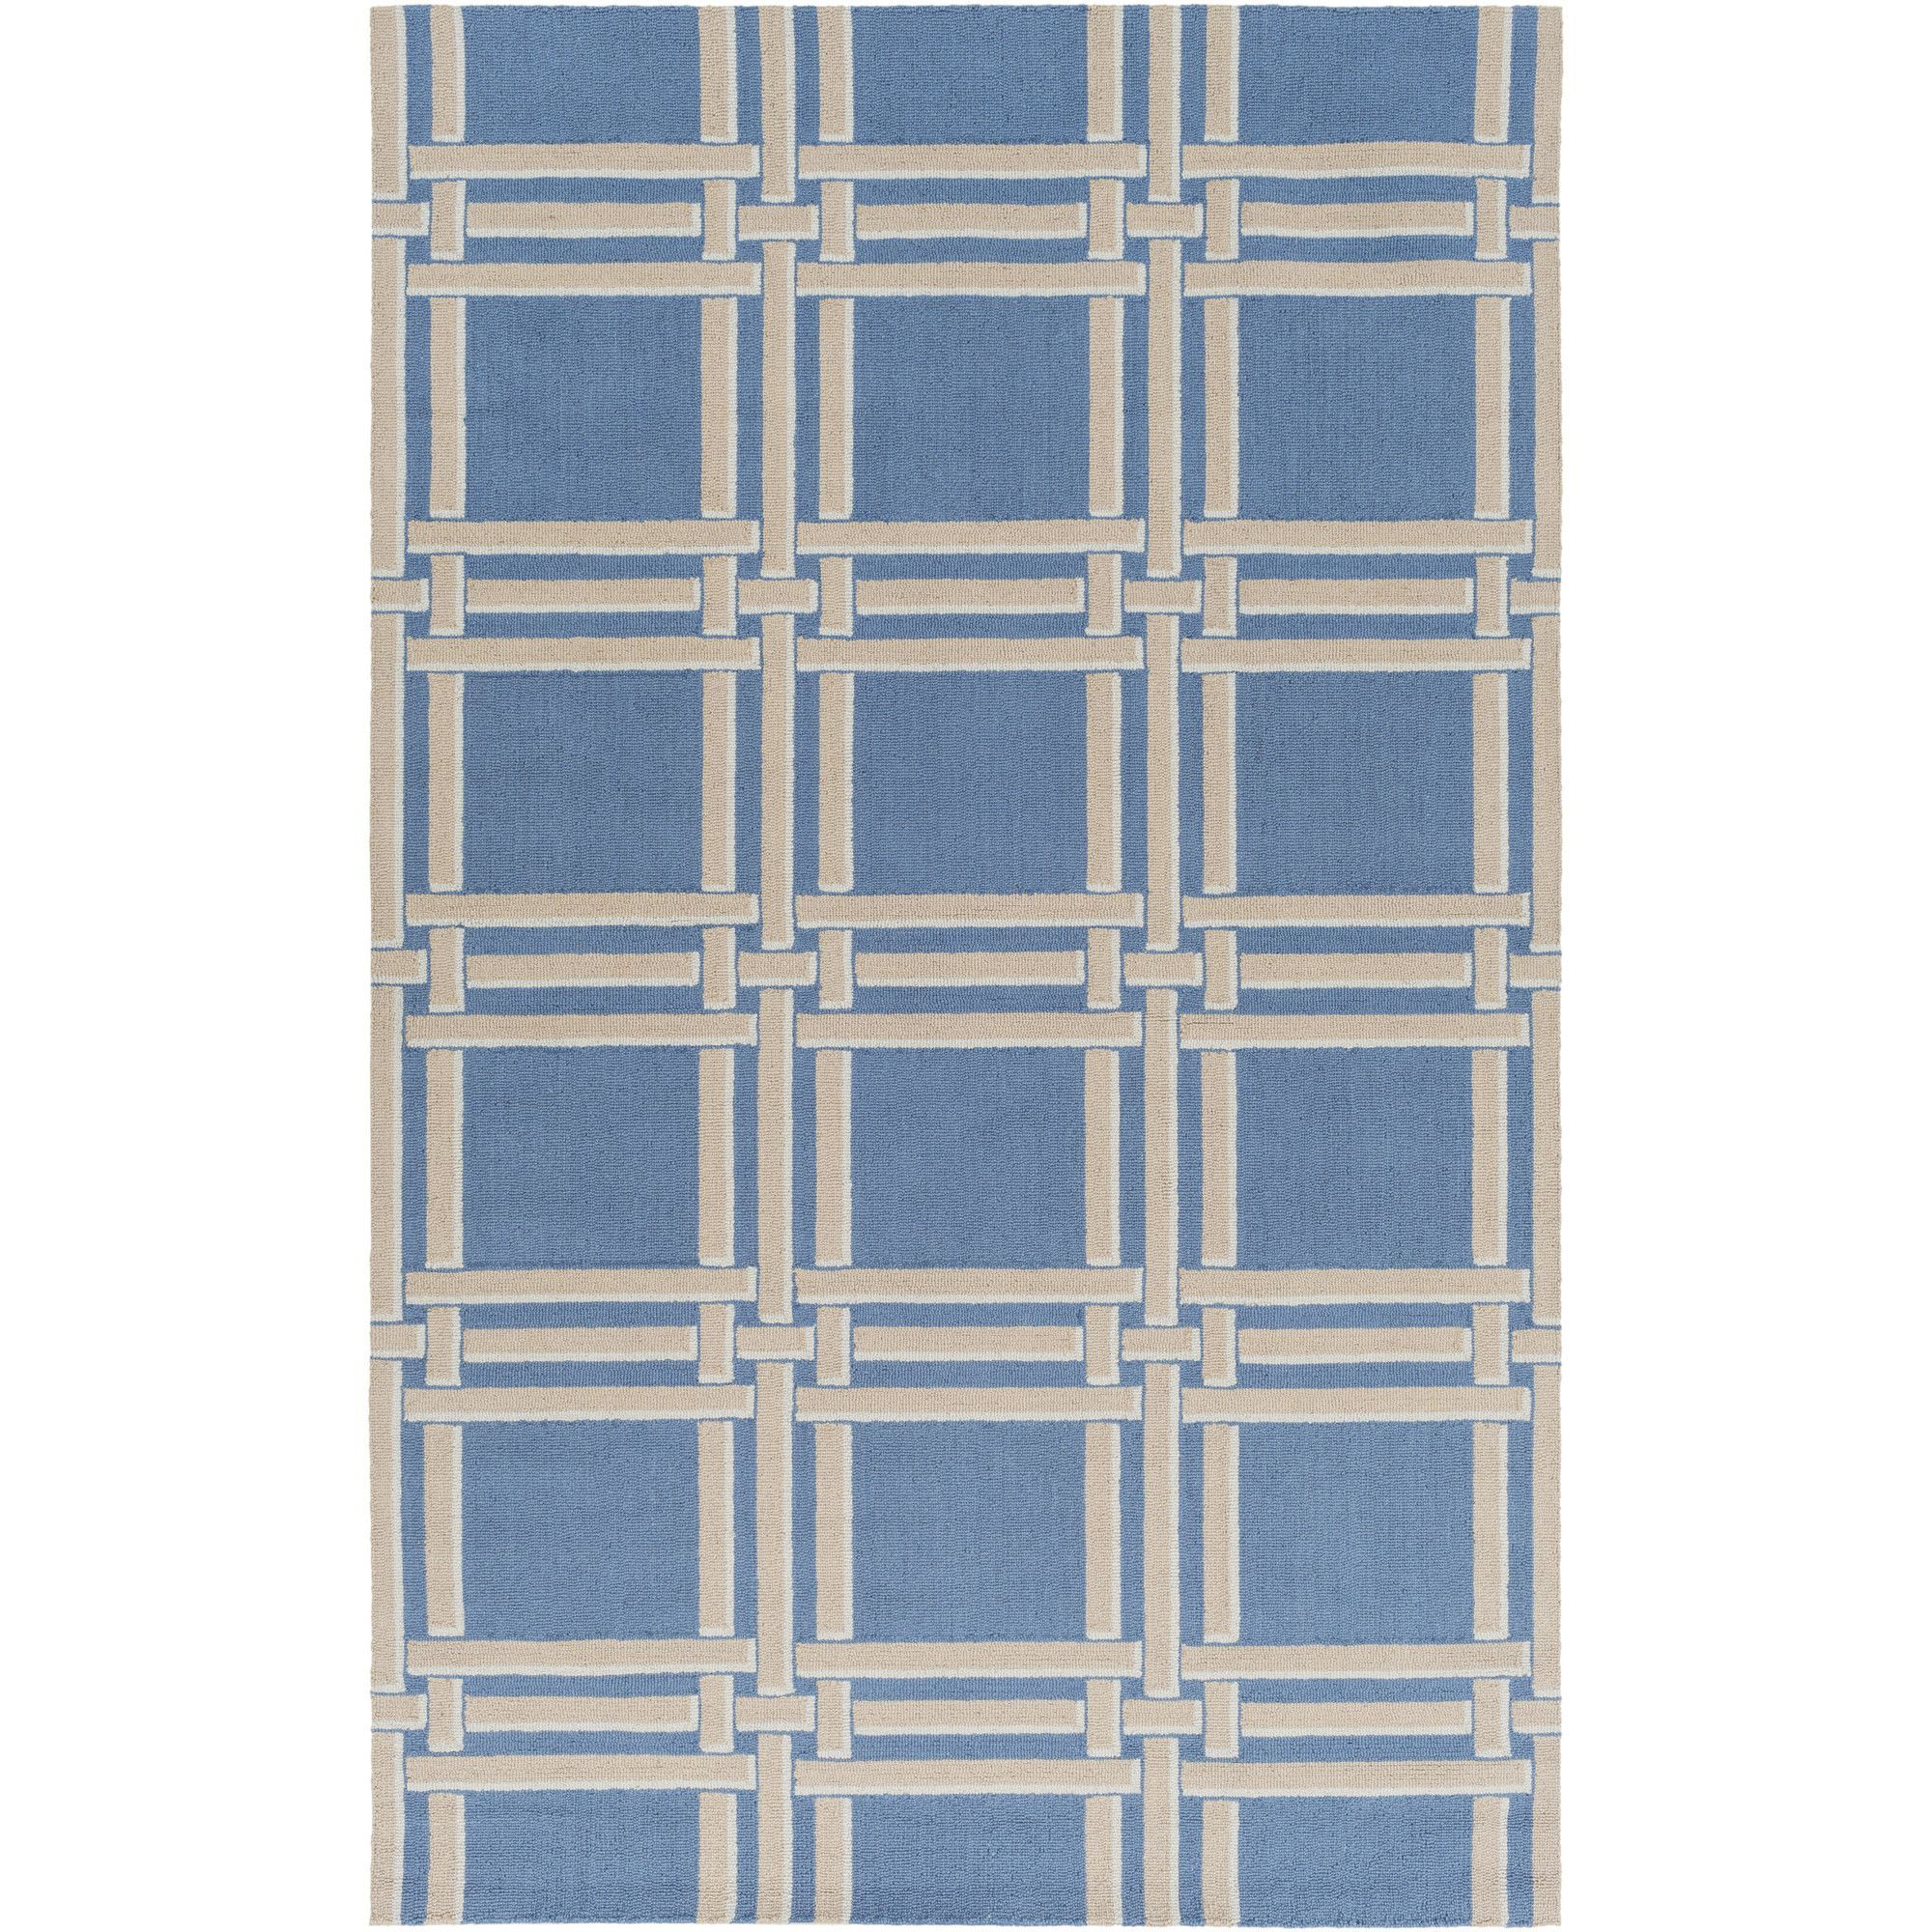 greenbright trellis dark modern wilson lattice fl rug handknotted blue accent bright area teal calipso